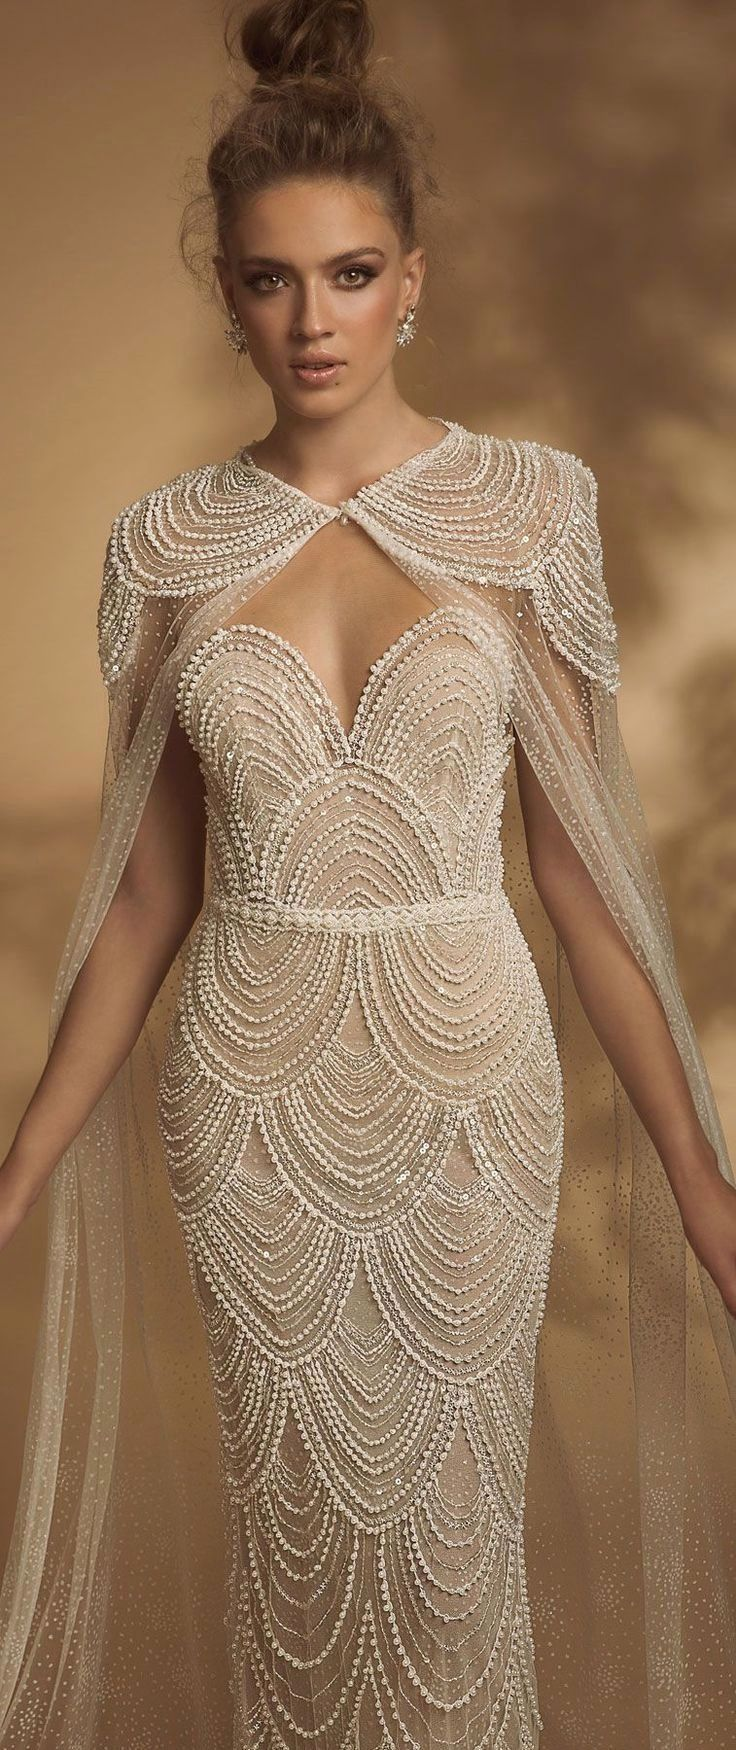 White wedding dress. Brides think of finding the perfect wedding day, but for th…